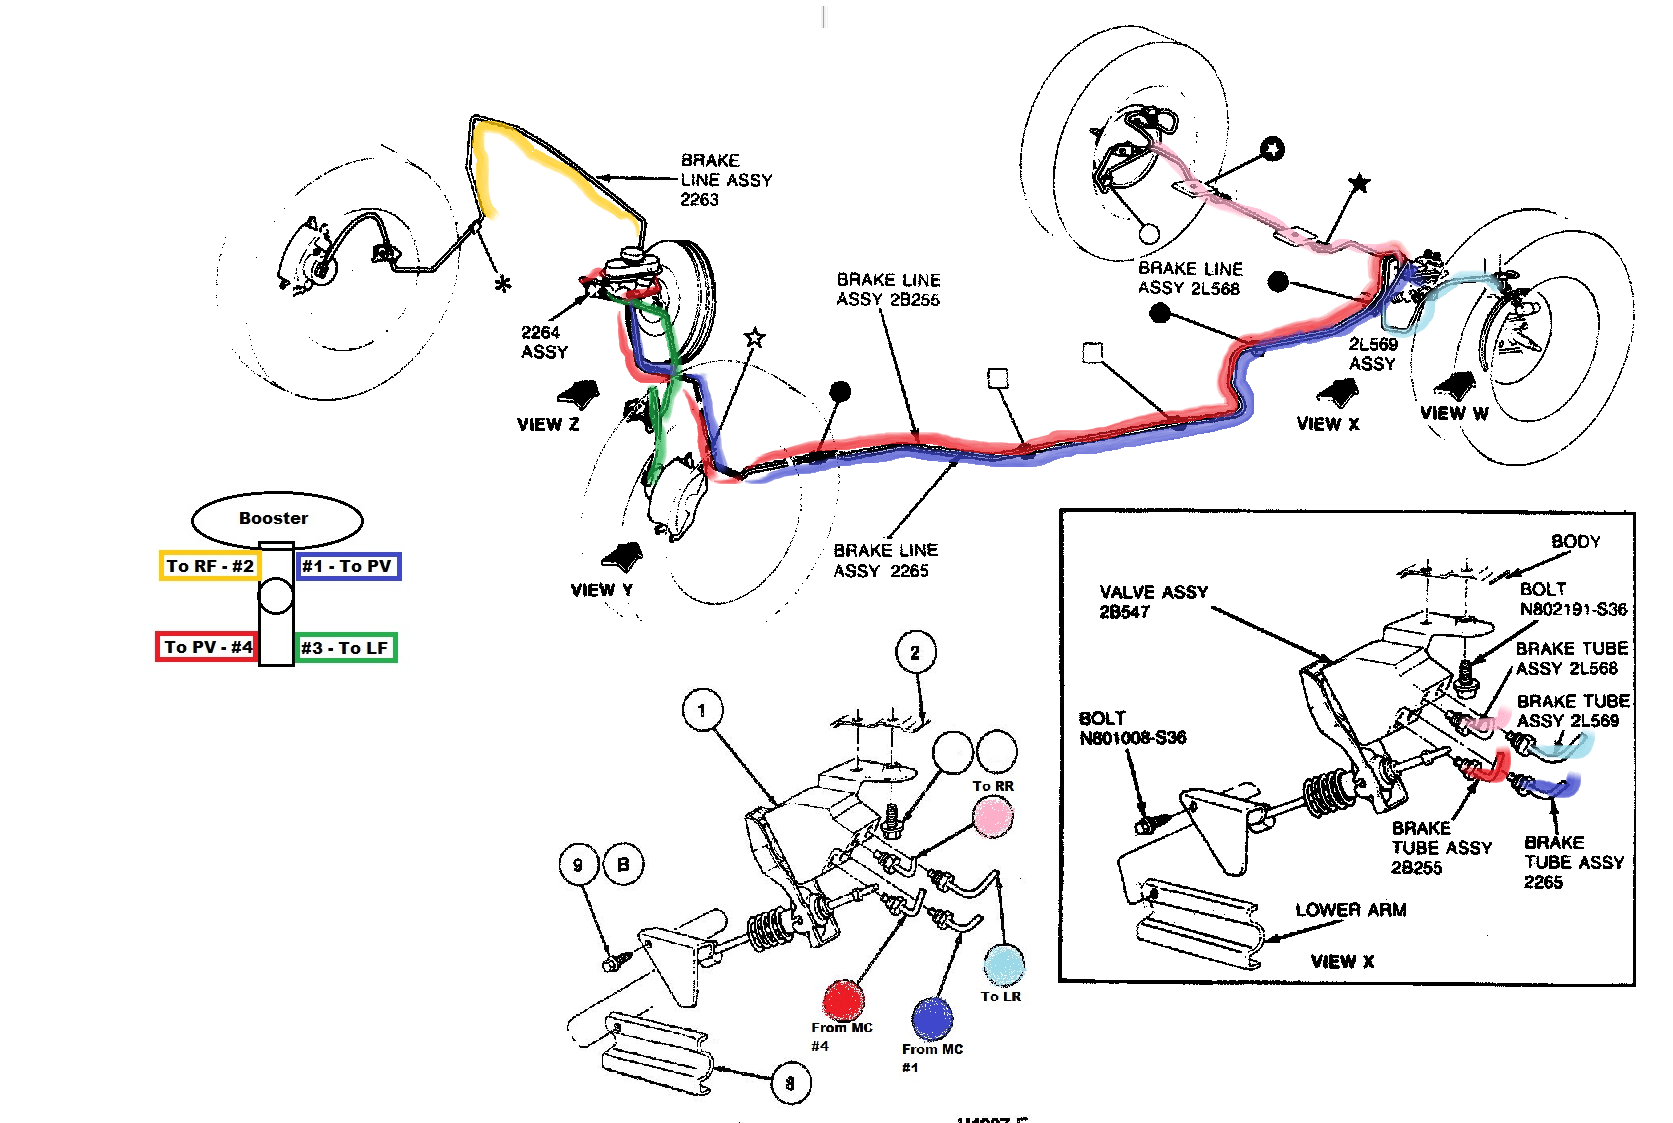 hight resolution of diagrams likewise 2003 ford taurus front suspension diagram on 2006 ford taurus rear suspension diagram